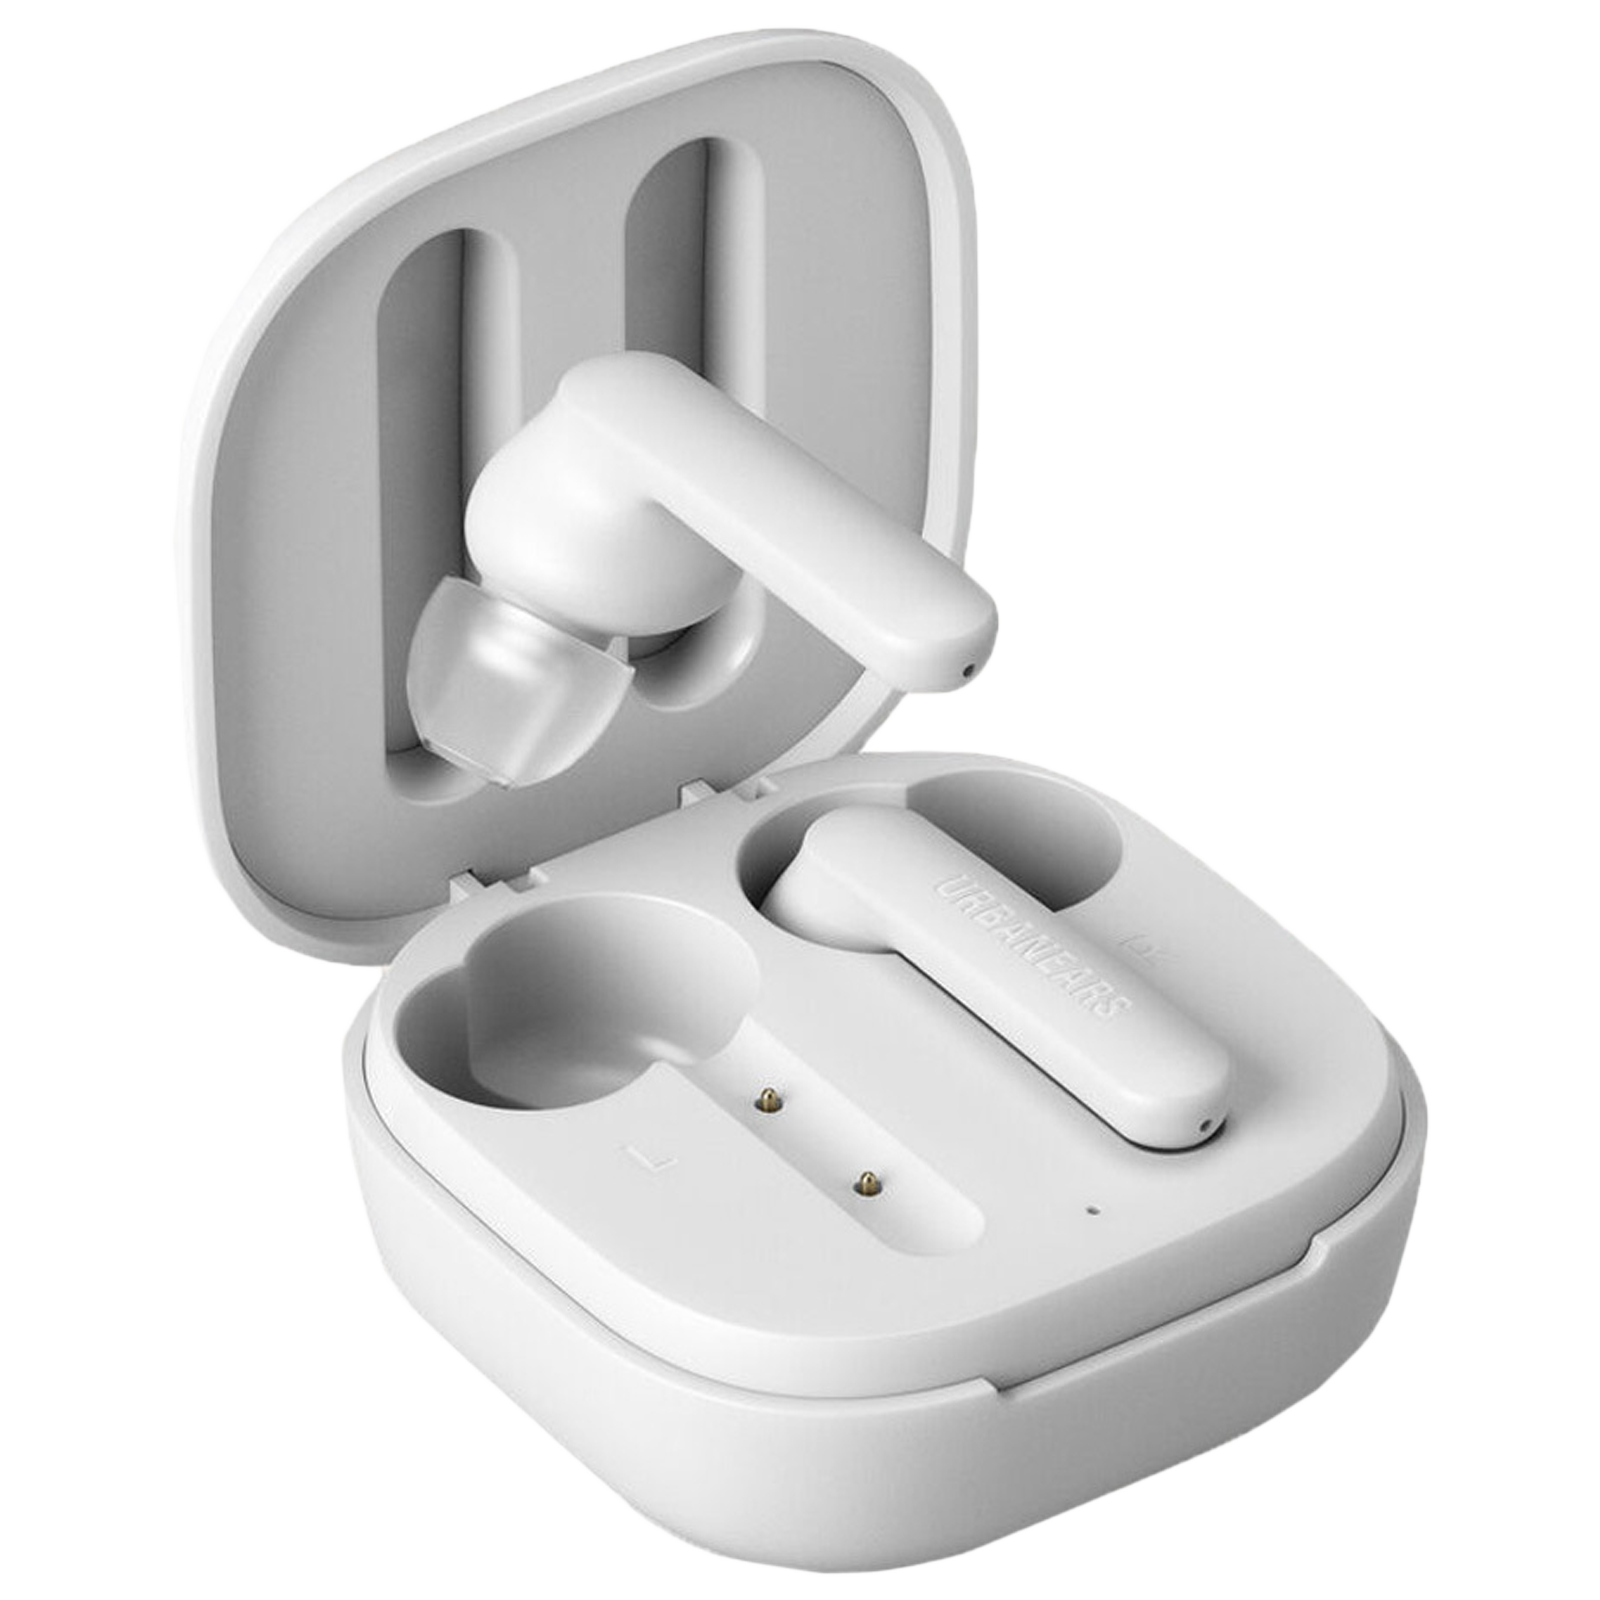 Urbanears Alby In-Ear Truly Wireless Earbuds with Mic (Bluetooth 5.0, Voice Assistant Support, UE-ALBY-WHT, Dusty White)_1